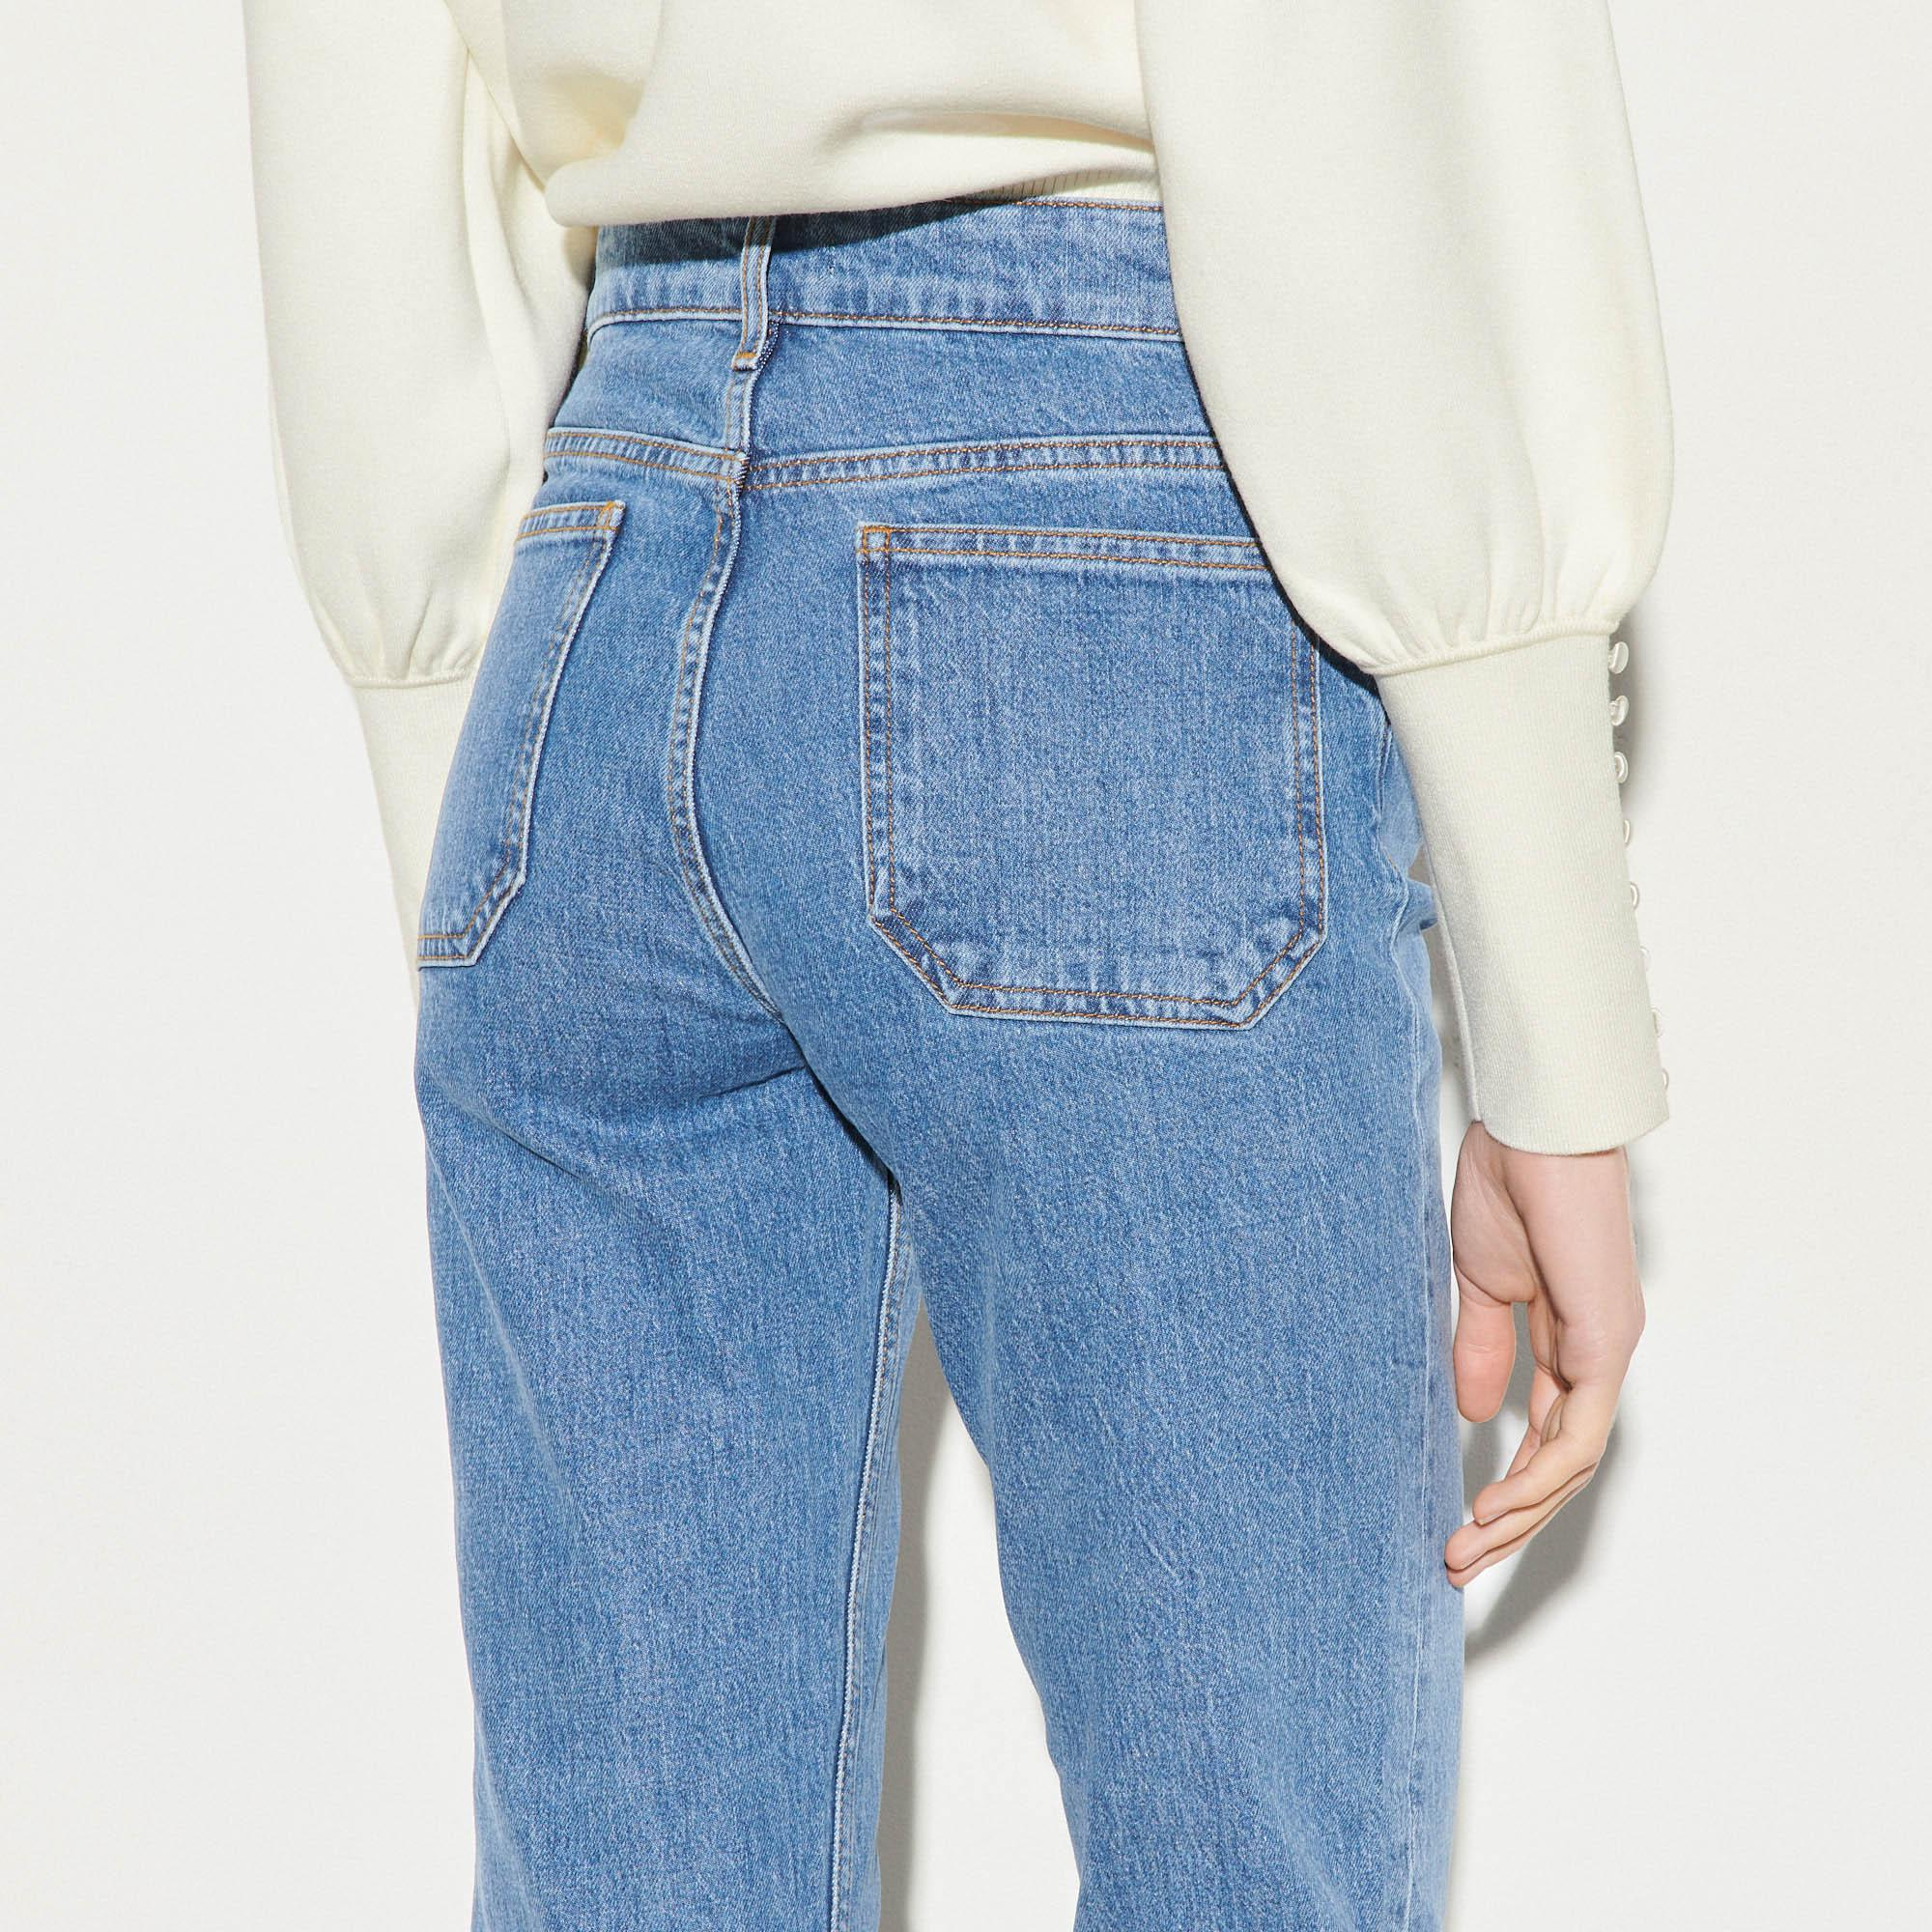 Stretch jeans with 5 pockets 4